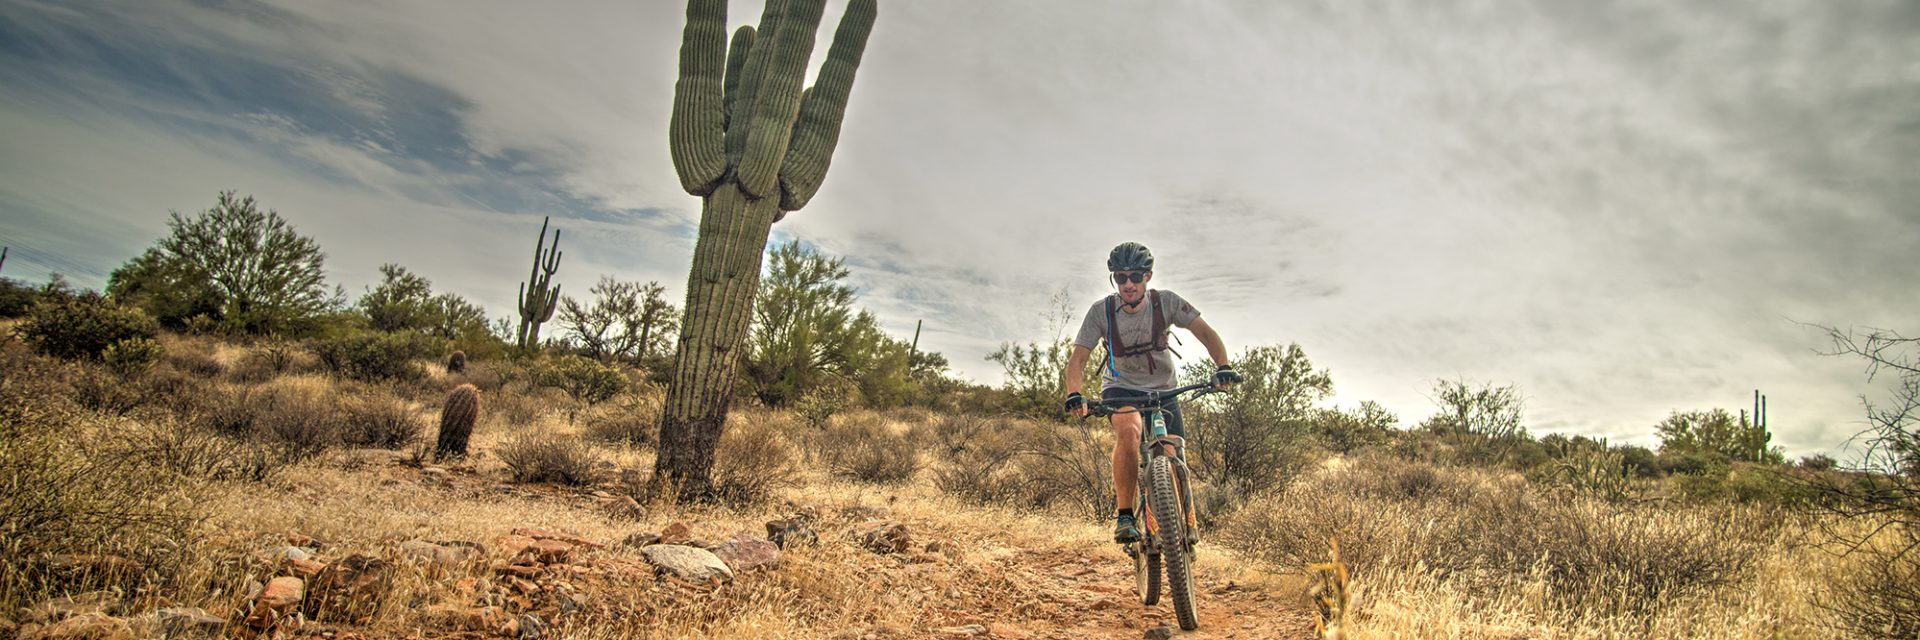 Half way around the Long Loop, McDowell Competitive Track, Arizona's Sonoran Desert guided mtb tour near Phoenix, AZ